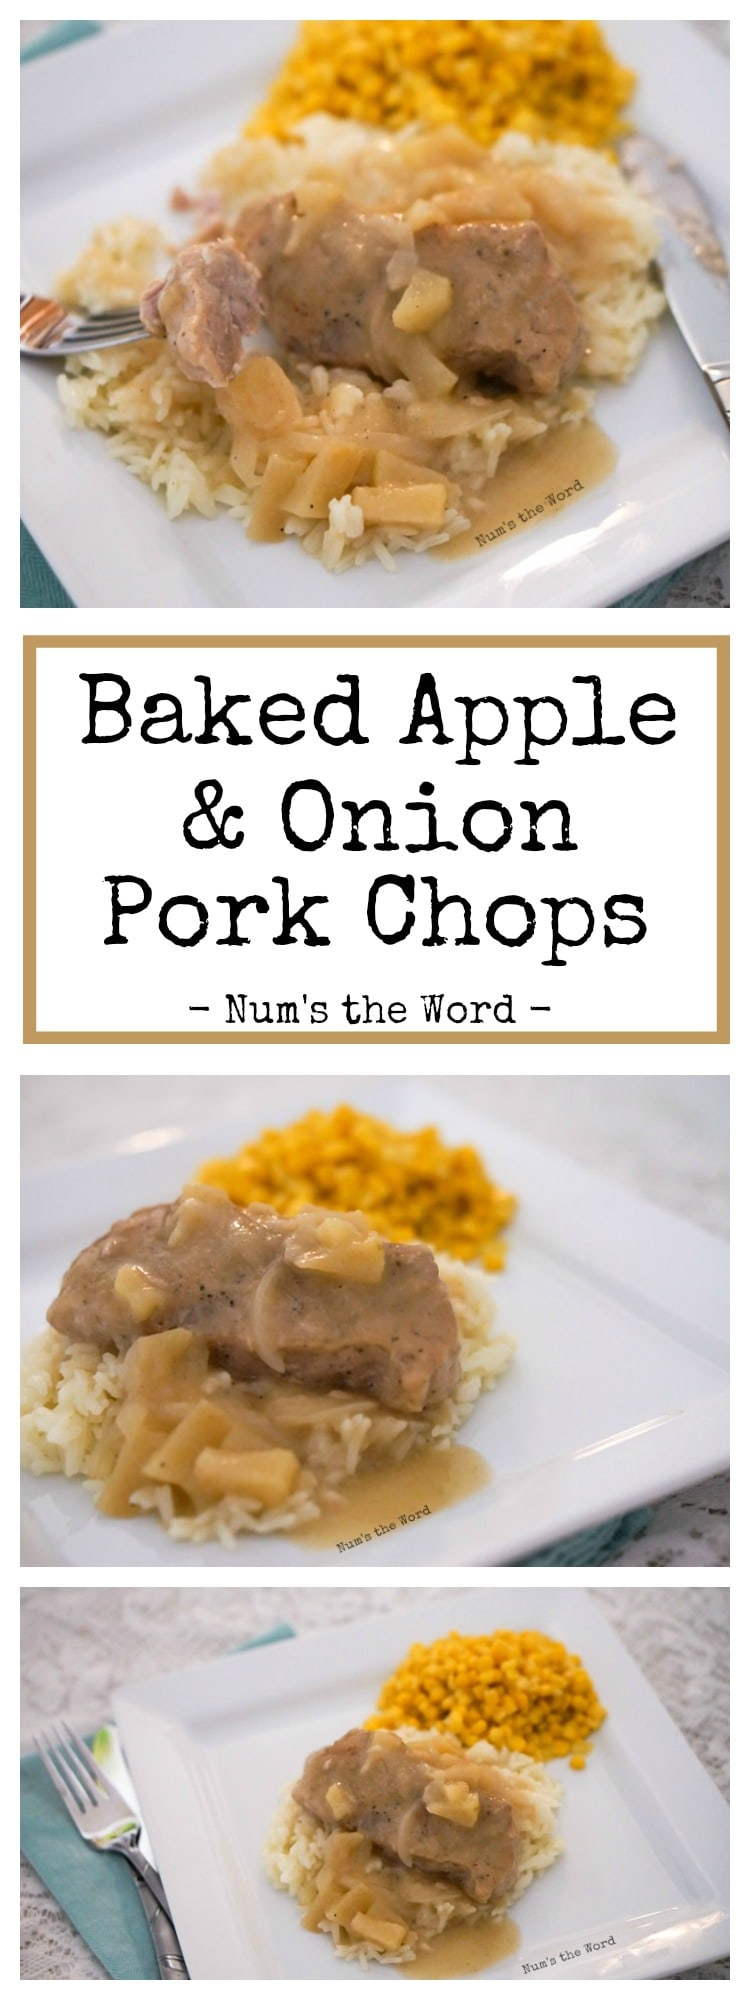 Baked Apple & Onion Pork Chops